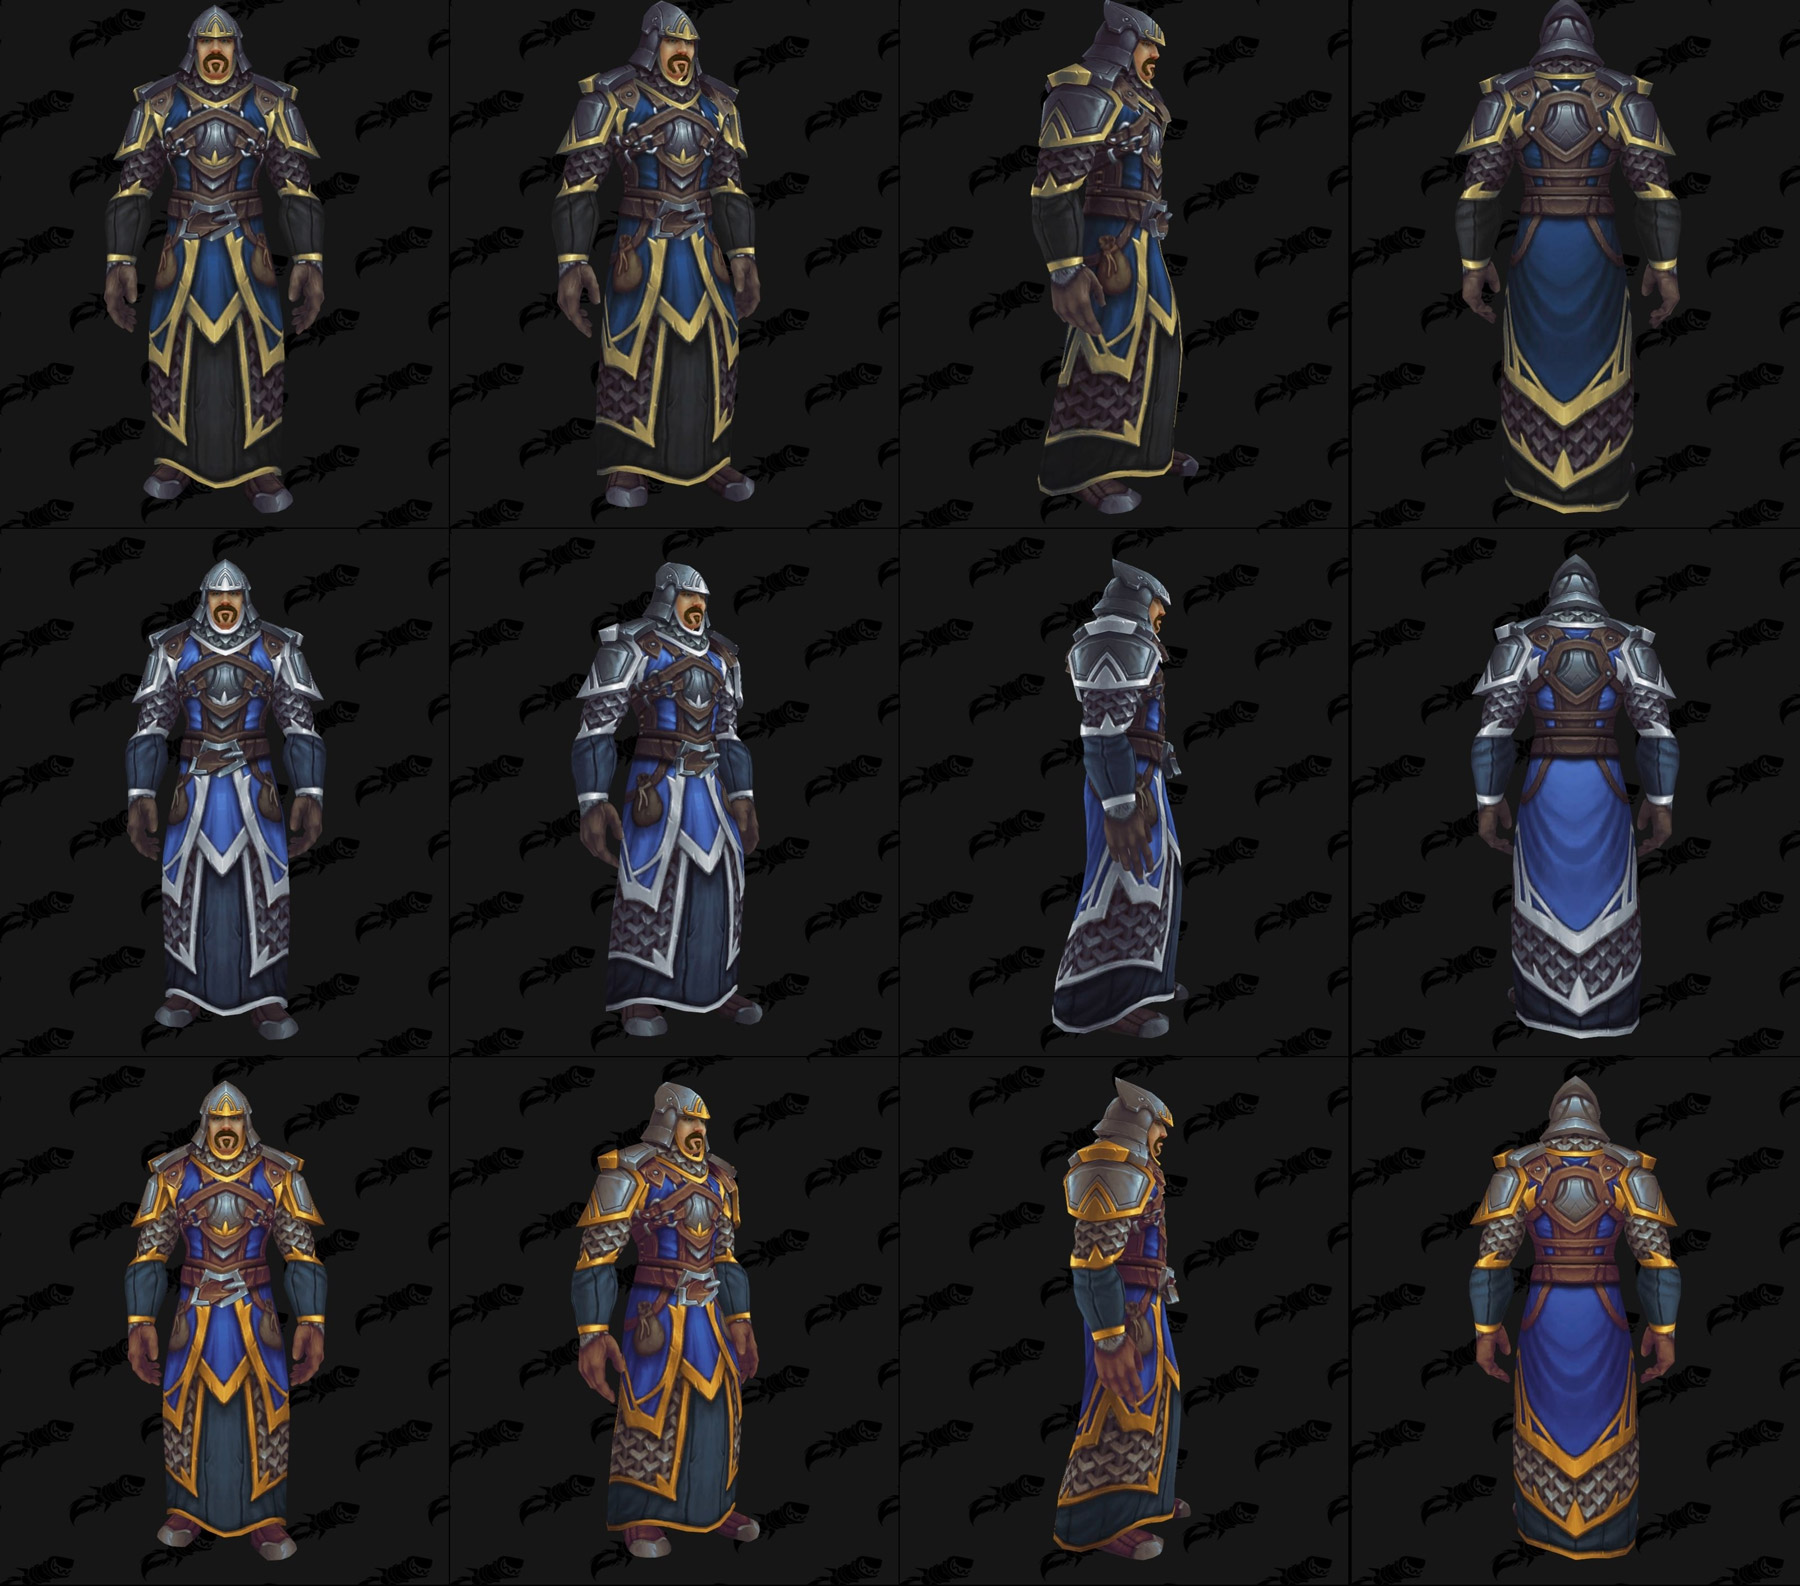 Ensembles Front de guerre (Alliance) en maille - Tier 1 - Battle for Azeroth